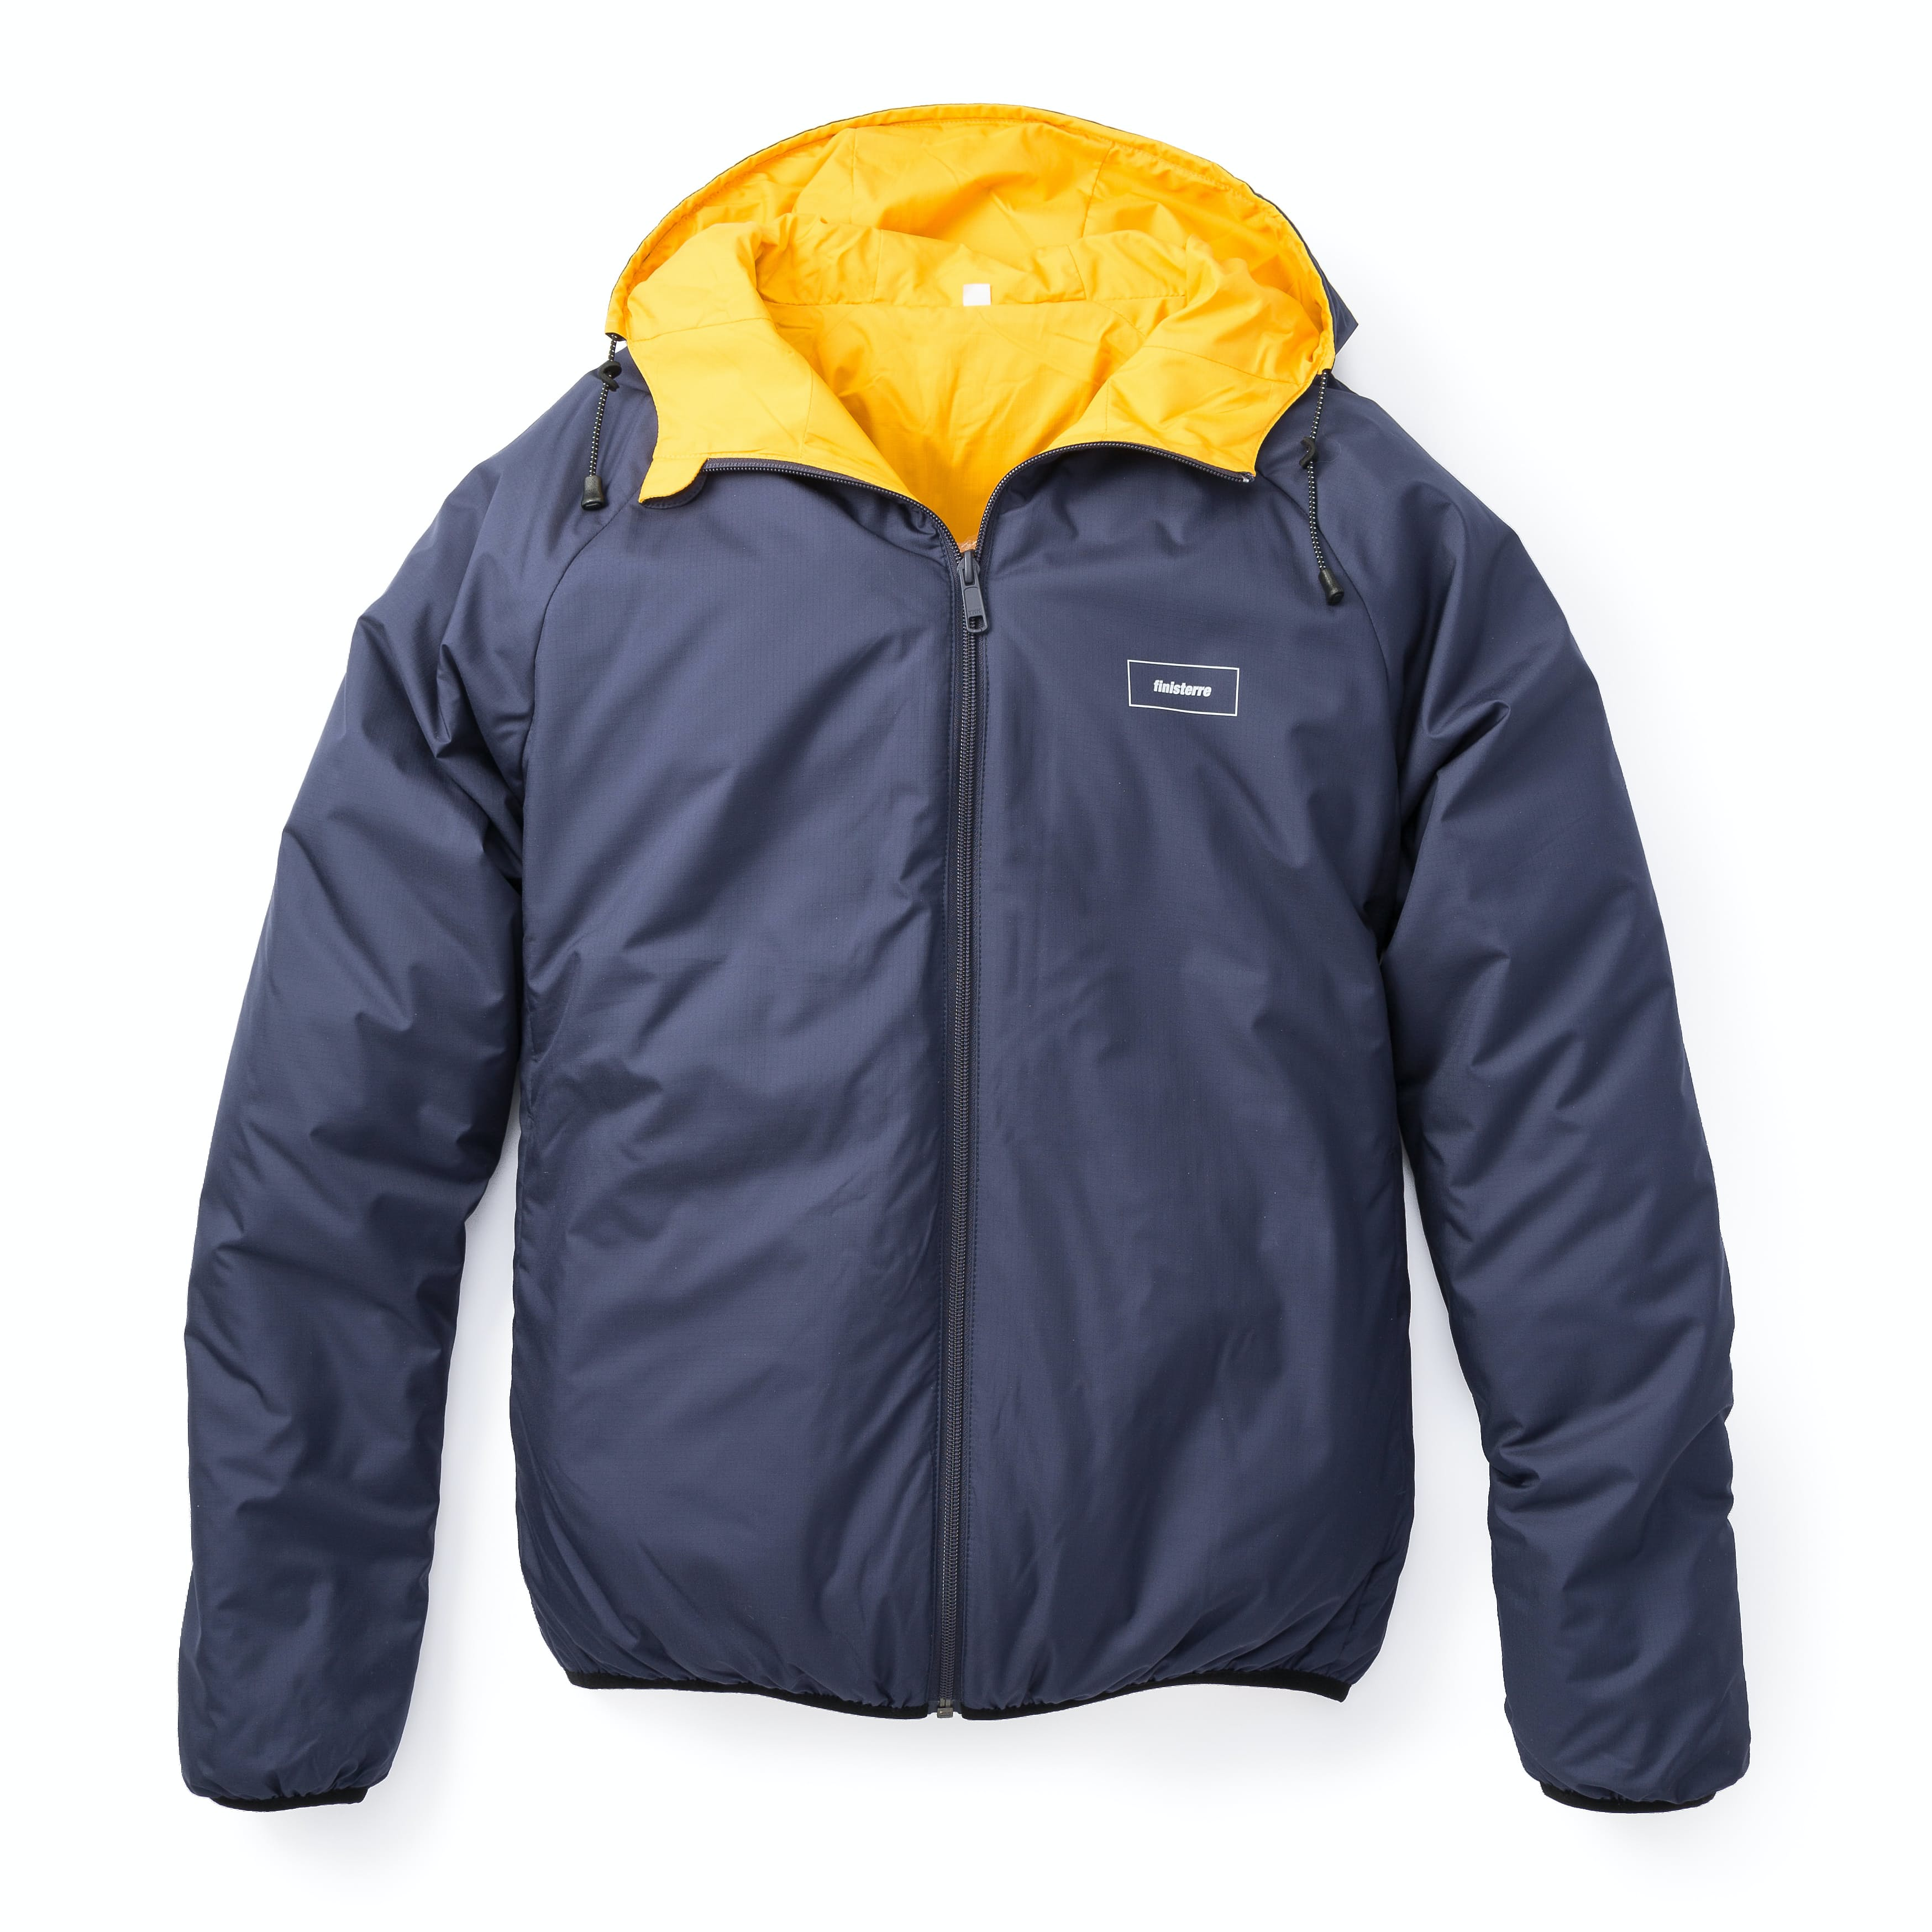 Vsy7flihgp finisterre aeris winter jackets 0 original